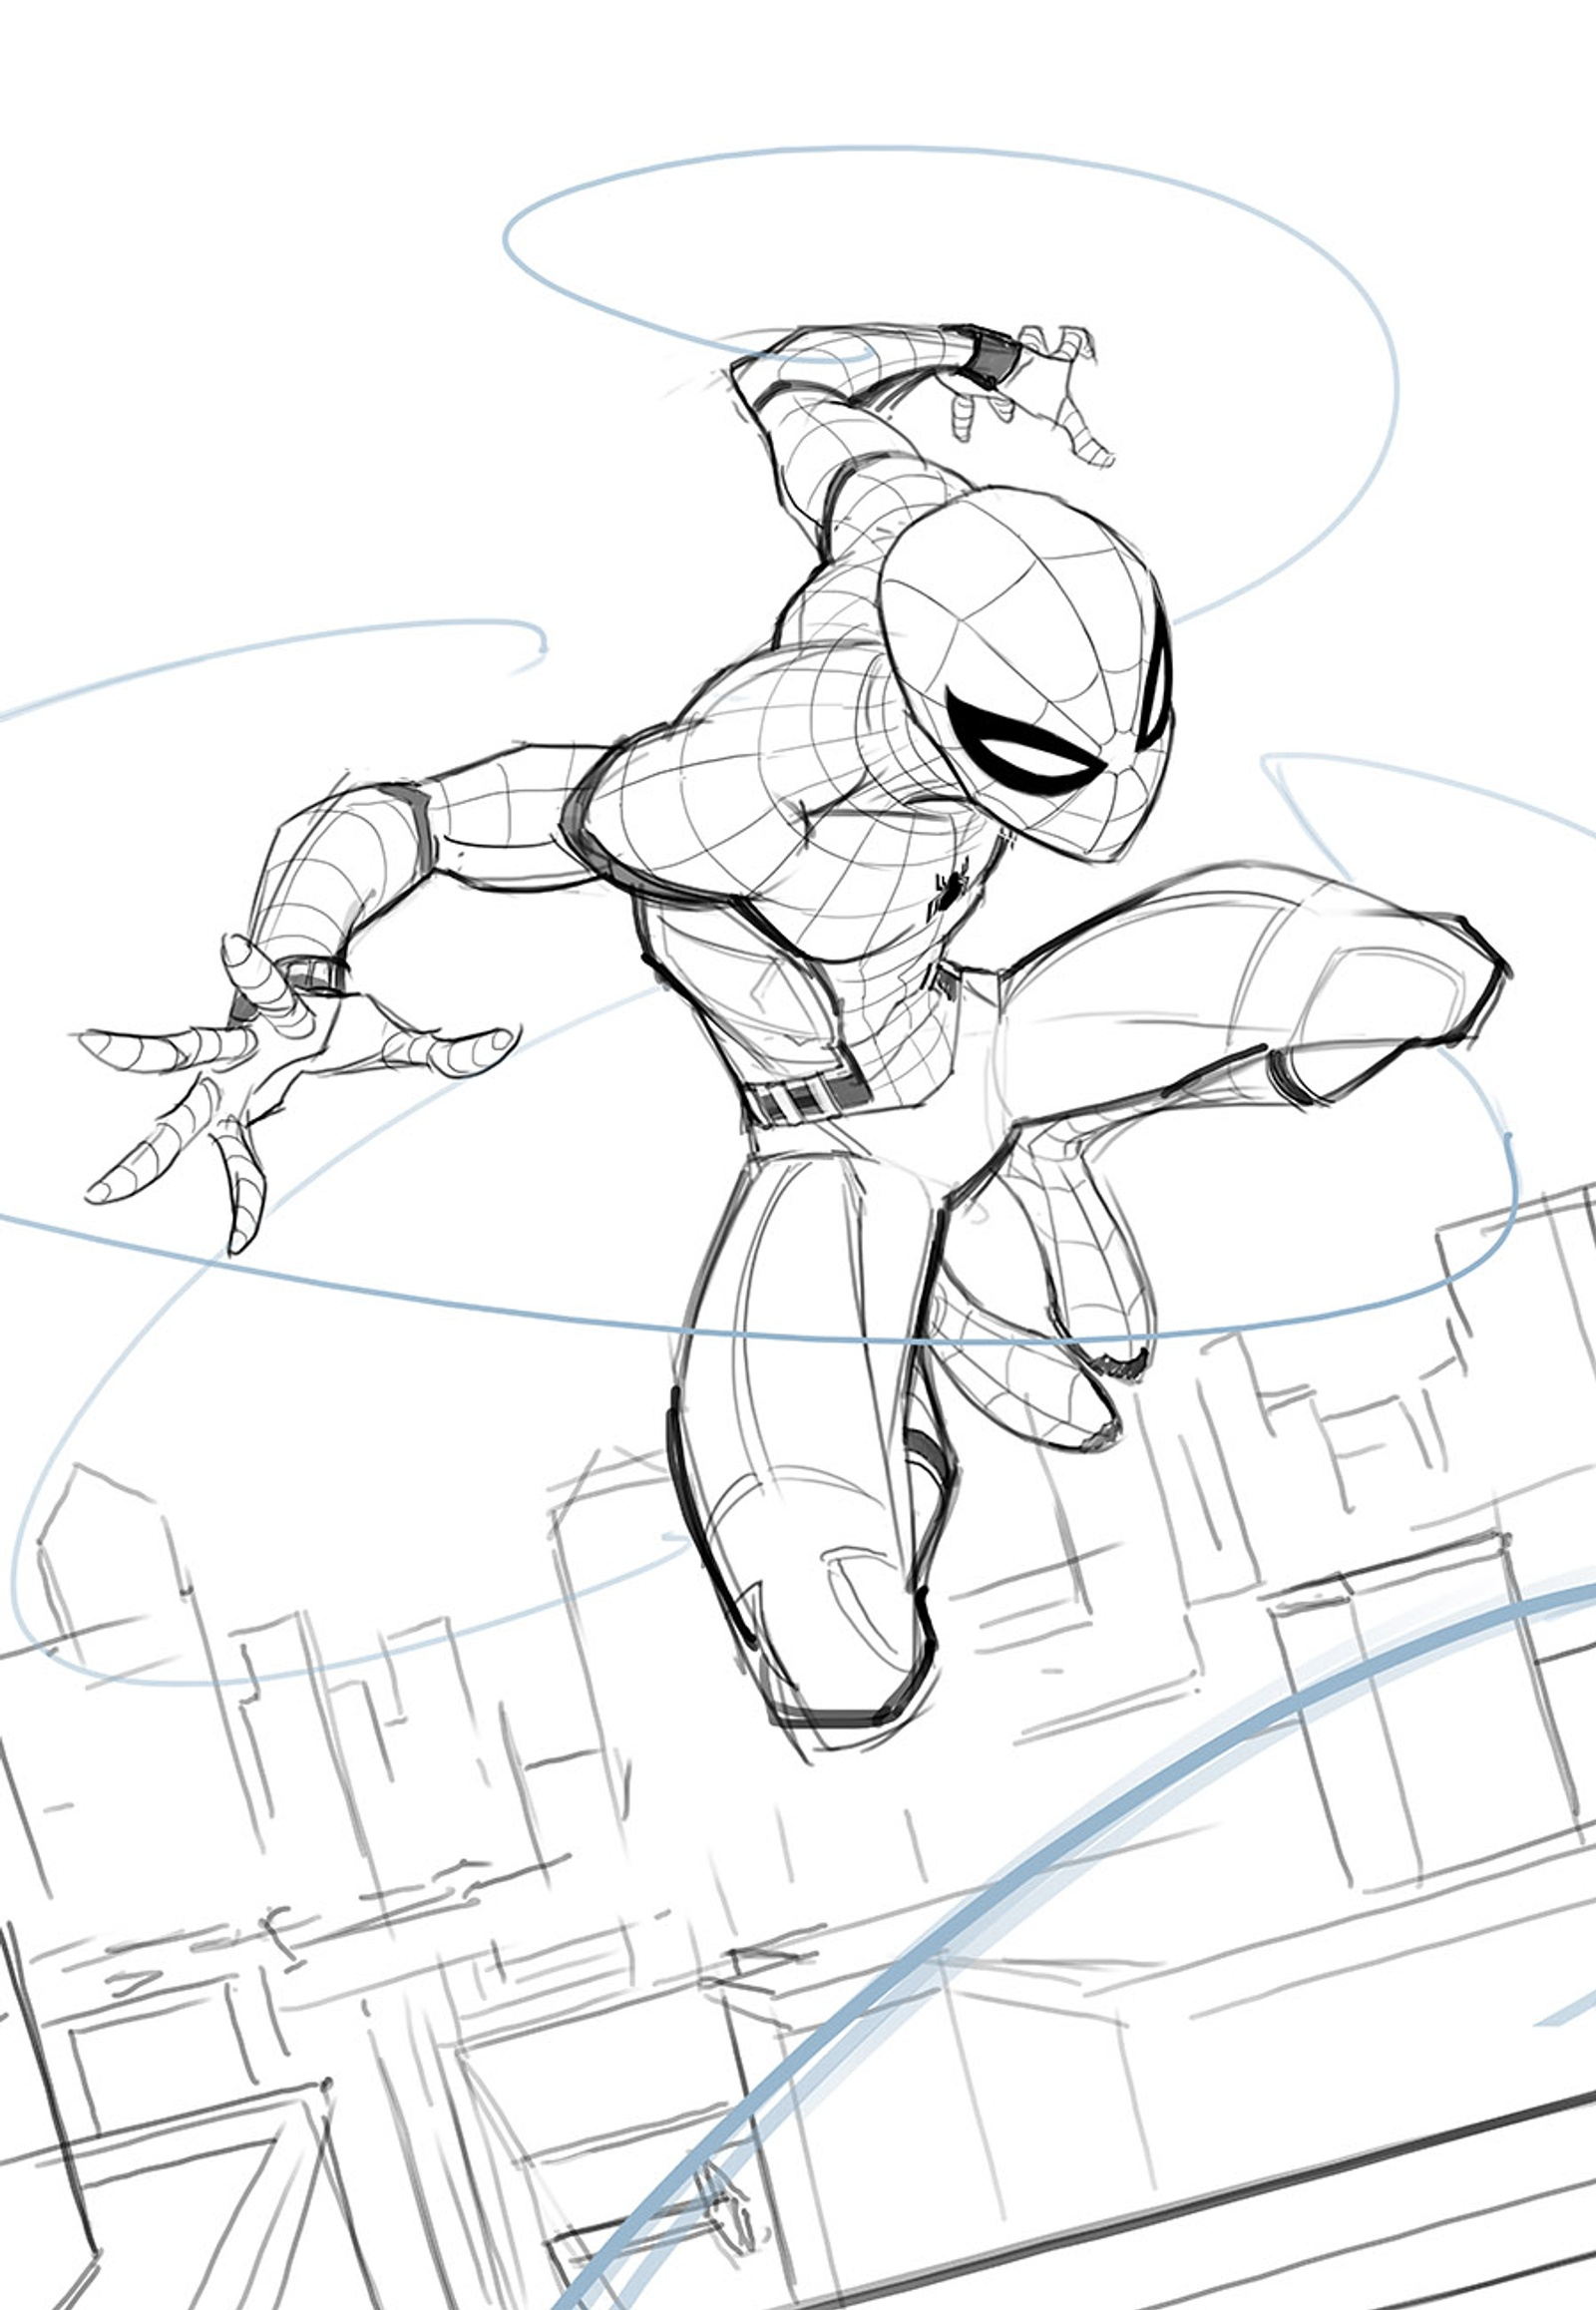 Pin by Phil Taylor on Spiderman coloring in 2020 | Spiderman ... | 2316x1600